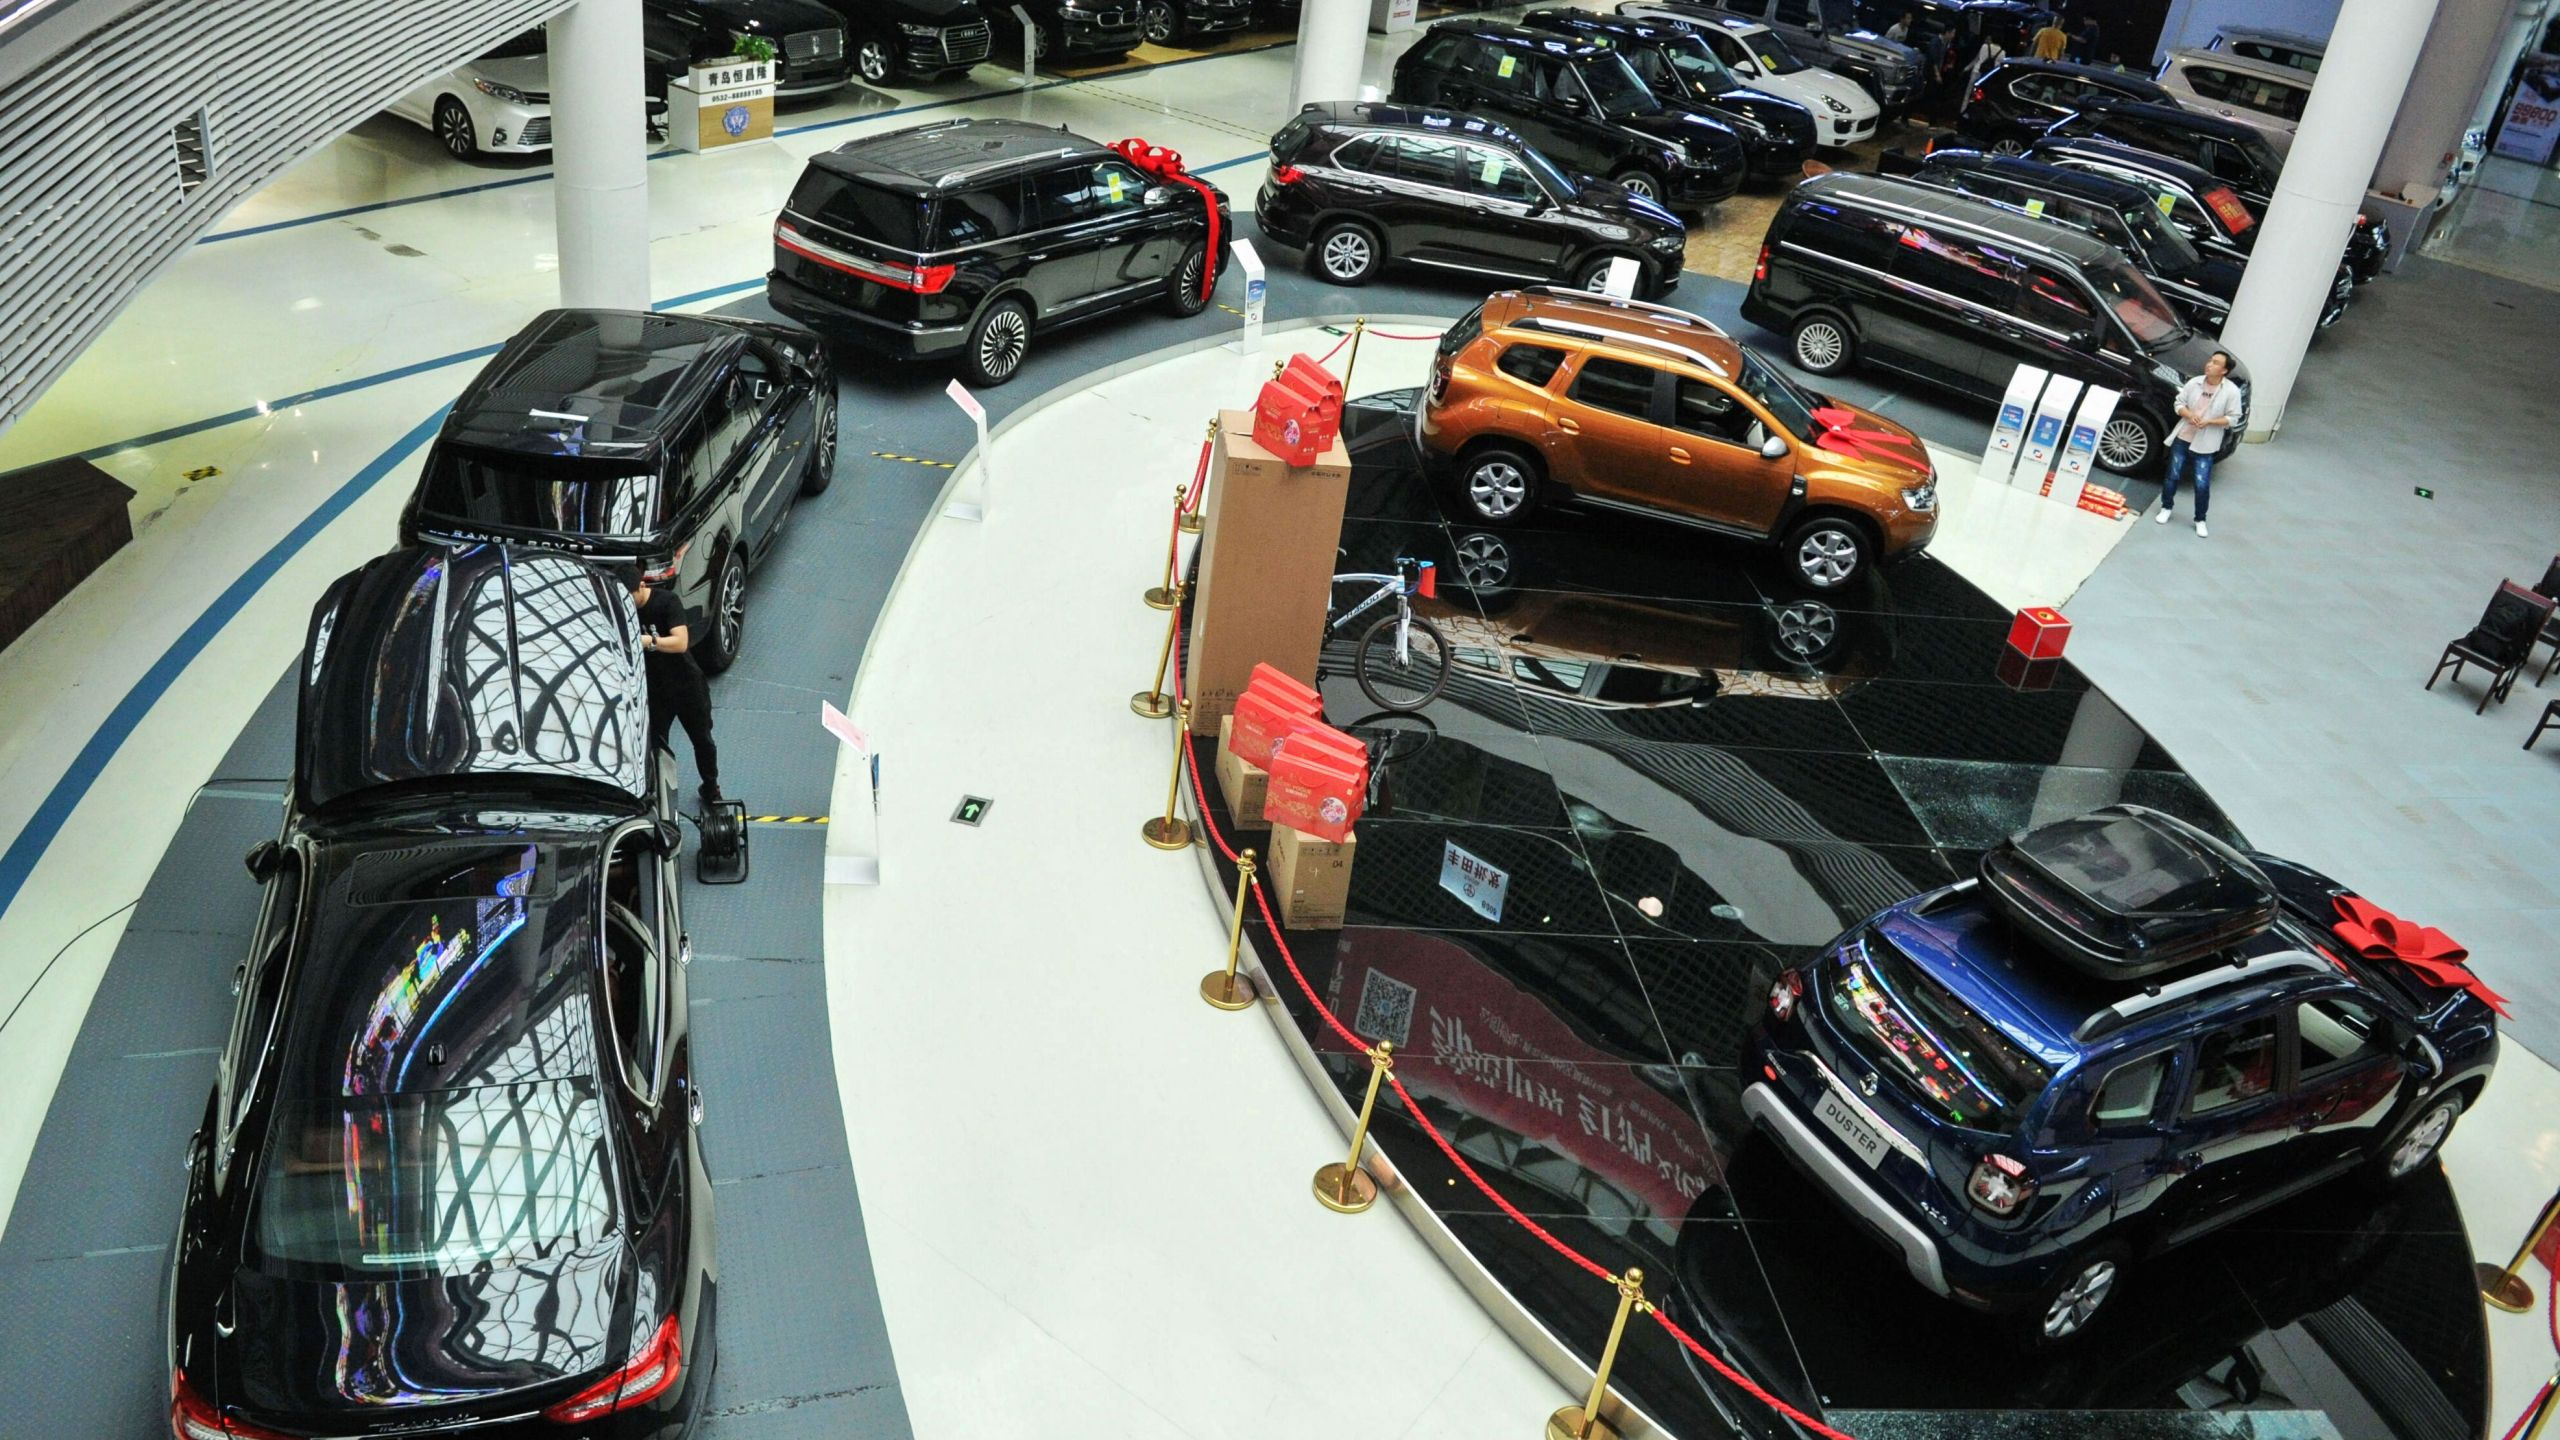 This photo taken on June 9, 2019, shows imported cars lined up in a showroom at the Qingdao, free trade port area in Qingdao, in China's eastern Shandong province.(Credit: STR/AFP/Getty Images)